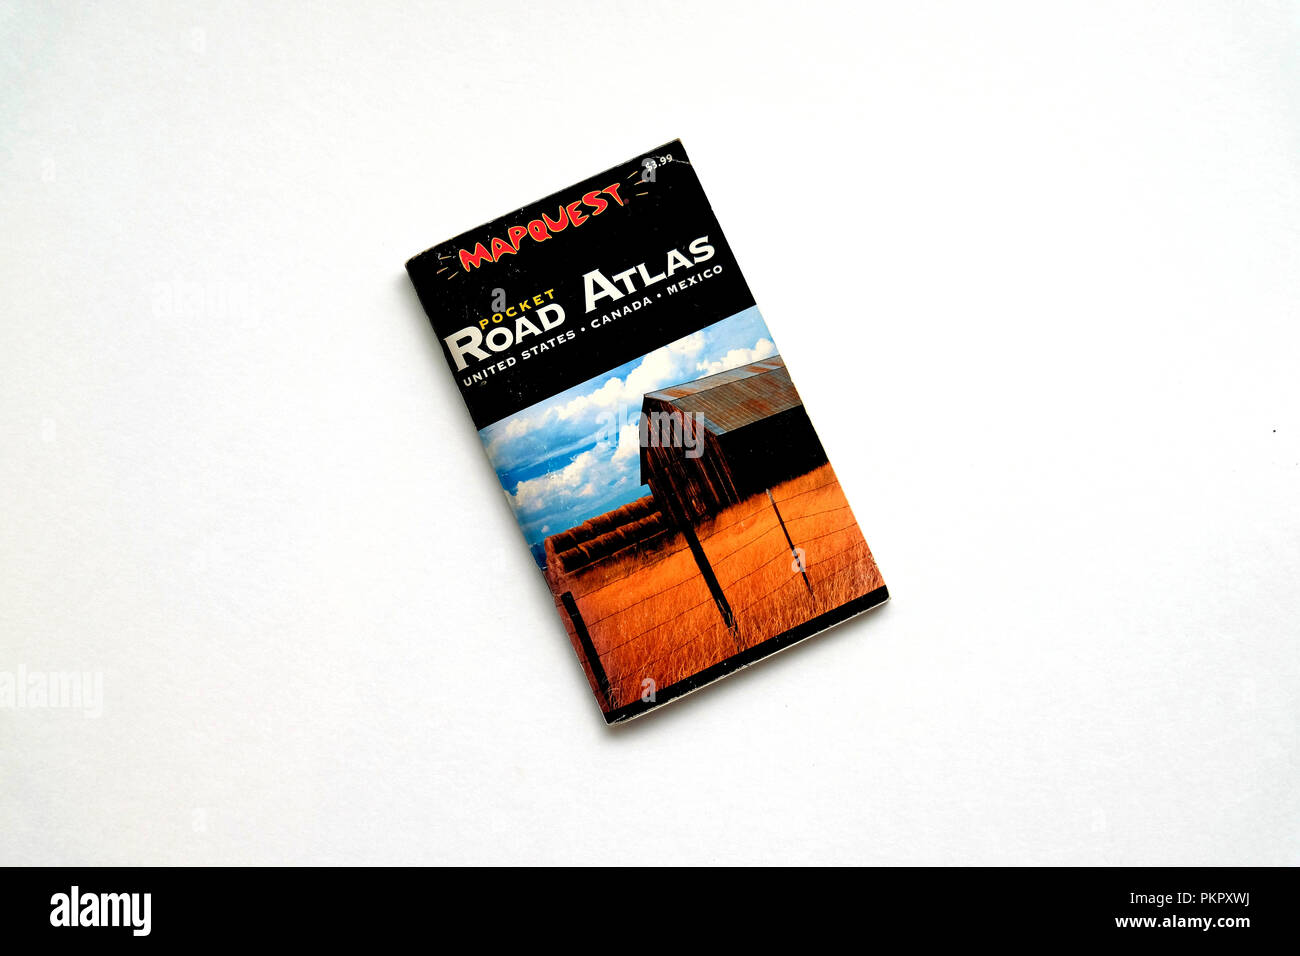 Pocket Road Atlas for the United States, Canada, and Mexico ... on google earth canada, search canada, apple canada, kijiji canada, linkedin canada, zillow canada, youtube canada, msn canada, maps canada, weather canada, at&t canada, netflix canada, ebay canada, ask canada, cia world factbook canada, white pages canada, expedia canada, anywho canada, altavista canada, area code lookup canada,